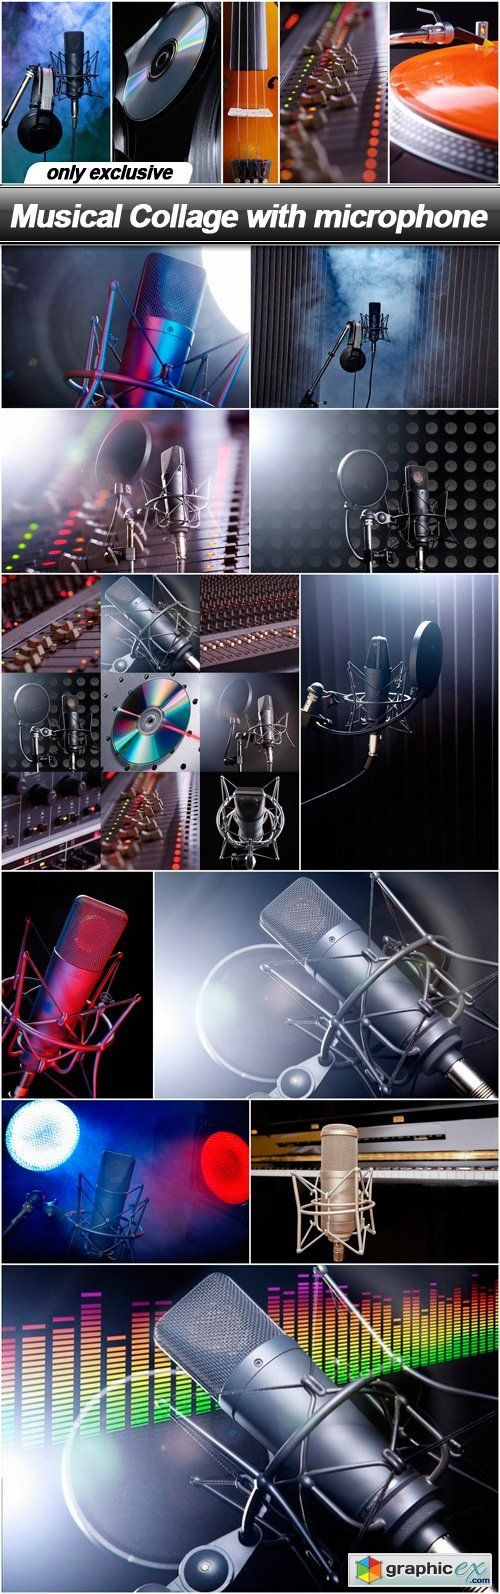 Musical Collage with microphone  12 UHQ JPEG  stock images